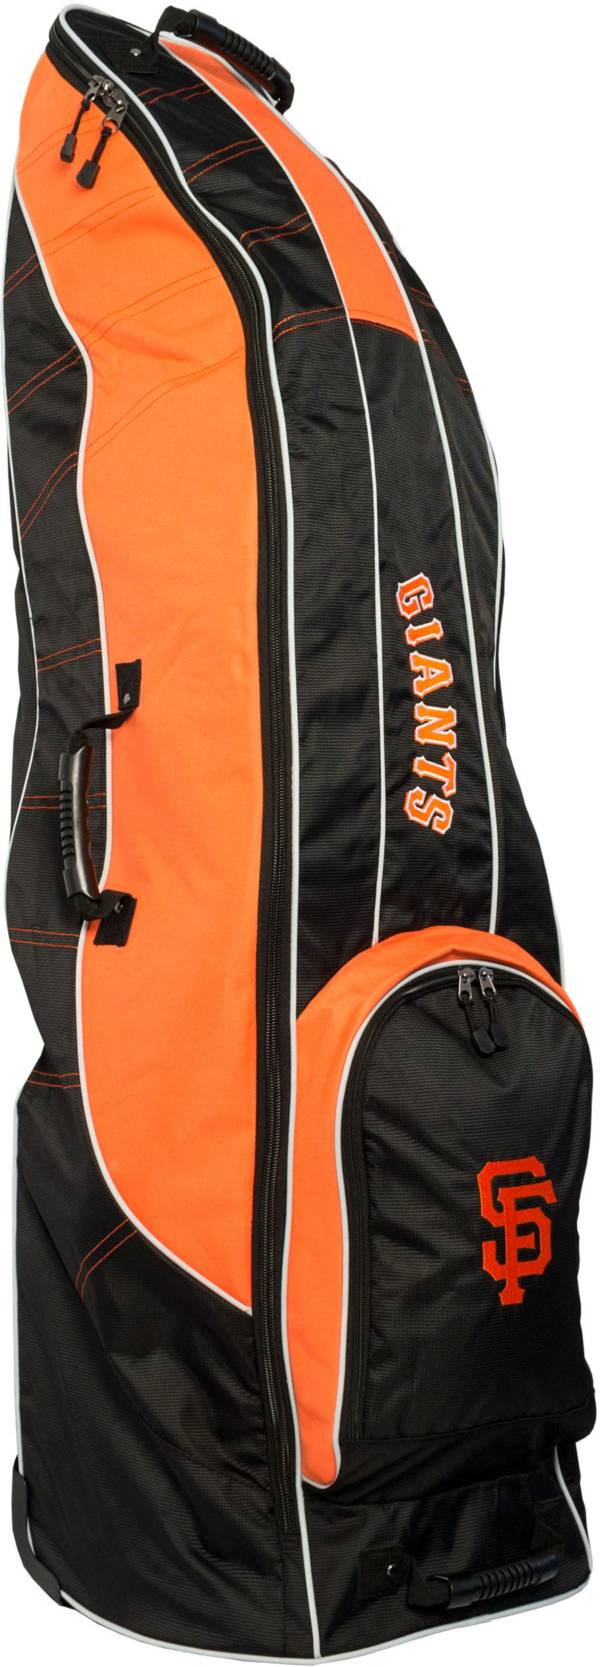 Team Golf San Francisco Giants Travel Cover product image